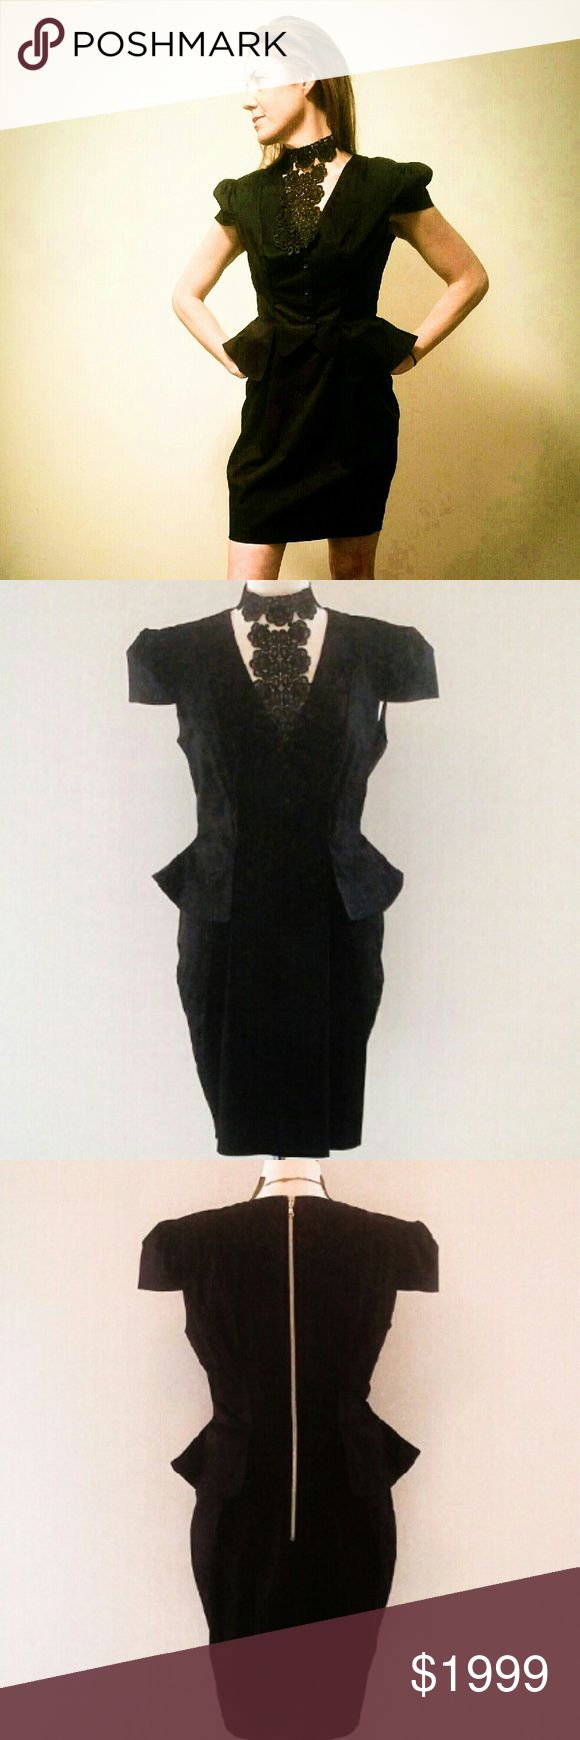 Alexander McQueen Black Dress Size 6 to 8 Euro 46 This is the gorgeous authentic Alexander McQueen  little black dress with cap sleeves and peplum waist in size 6 to 8 European size 46! This is an original authentic designer Alexander McQueen dress with zipper down the back and cosmetic ornamental buttons in the front. It's figure flattering giving you beautiful shapely curves and creates an hourglass silhouette. This dress is in excellent condition and is absolutely magnificent! Stunning…